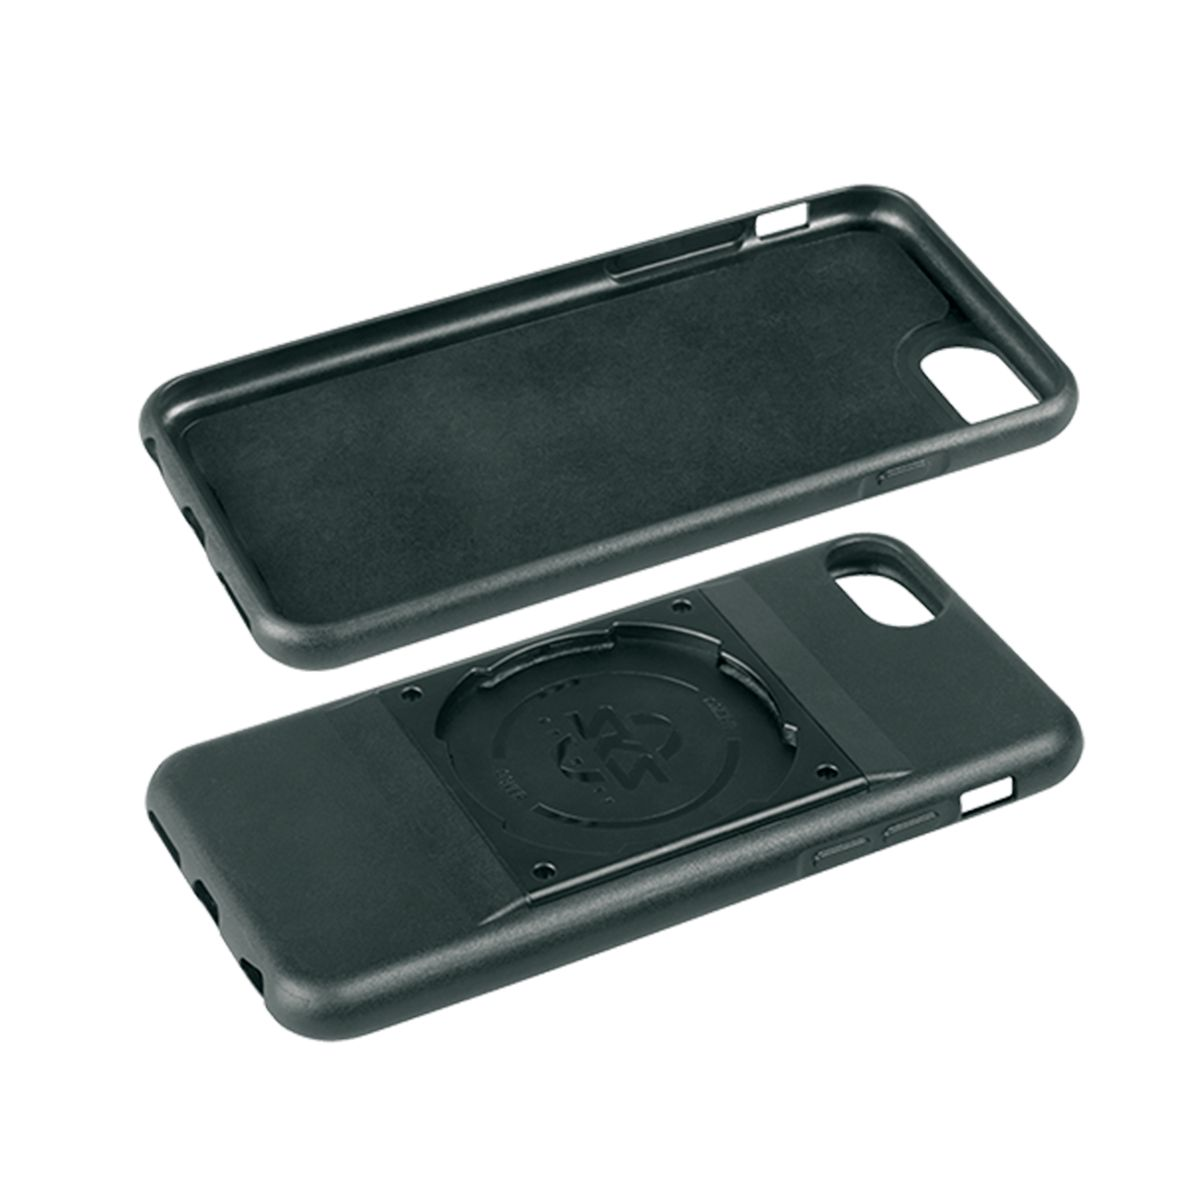 COMPIT Smartphone Cover